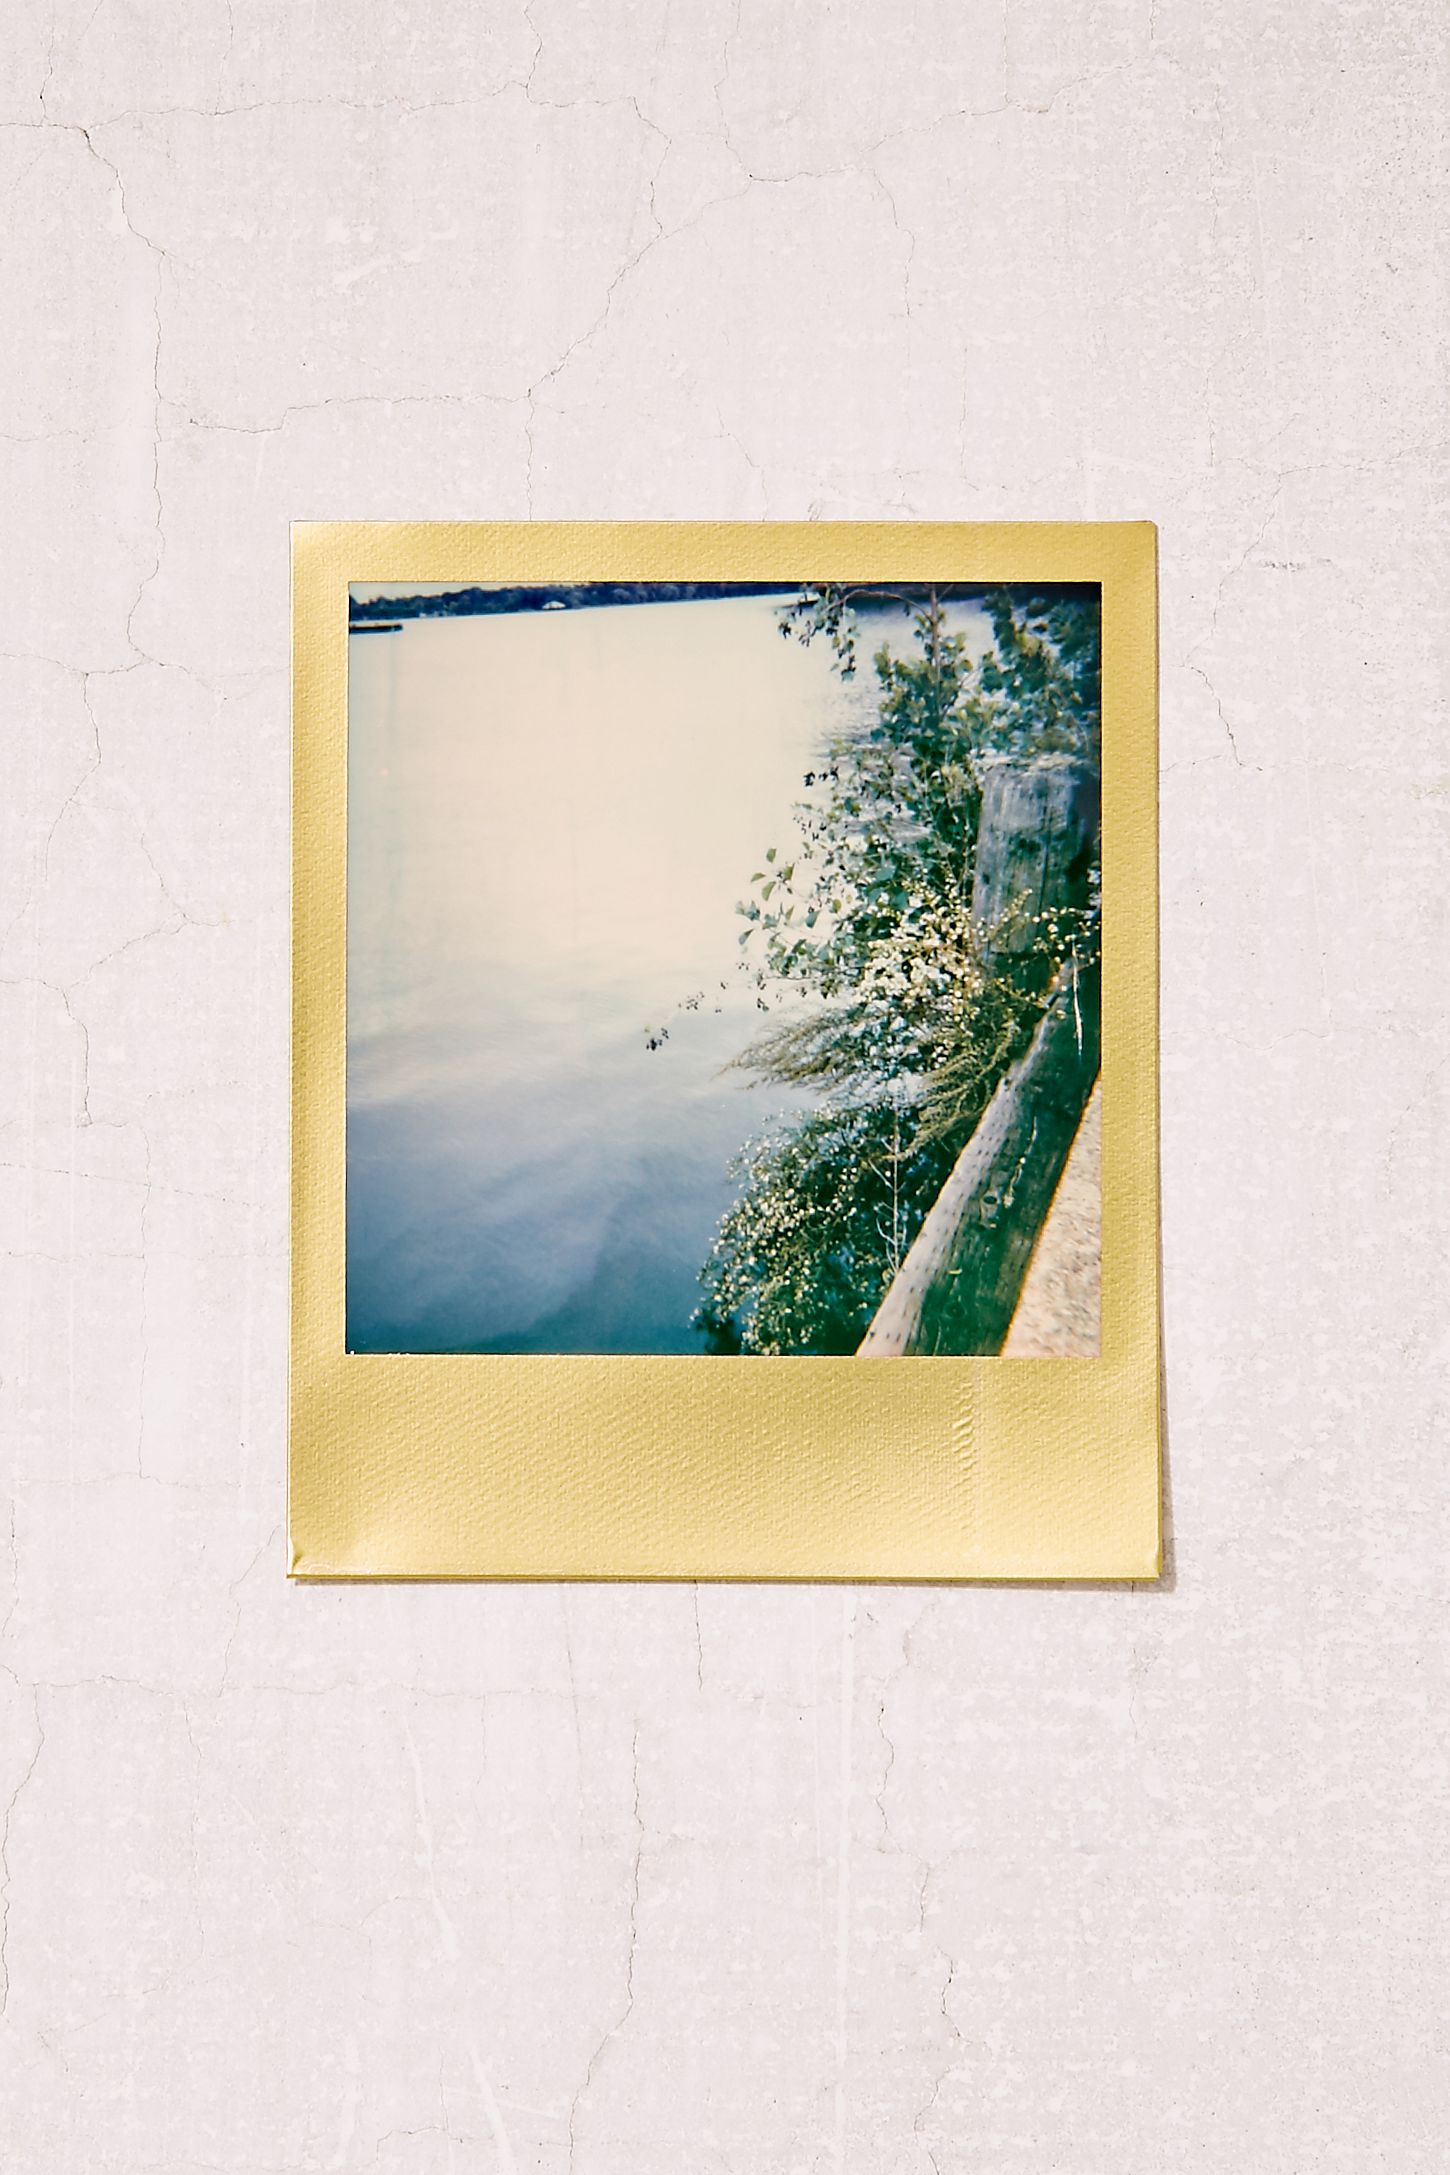 Polaroid Originals Limited Edition Gold Frame 600 Instant Film ...